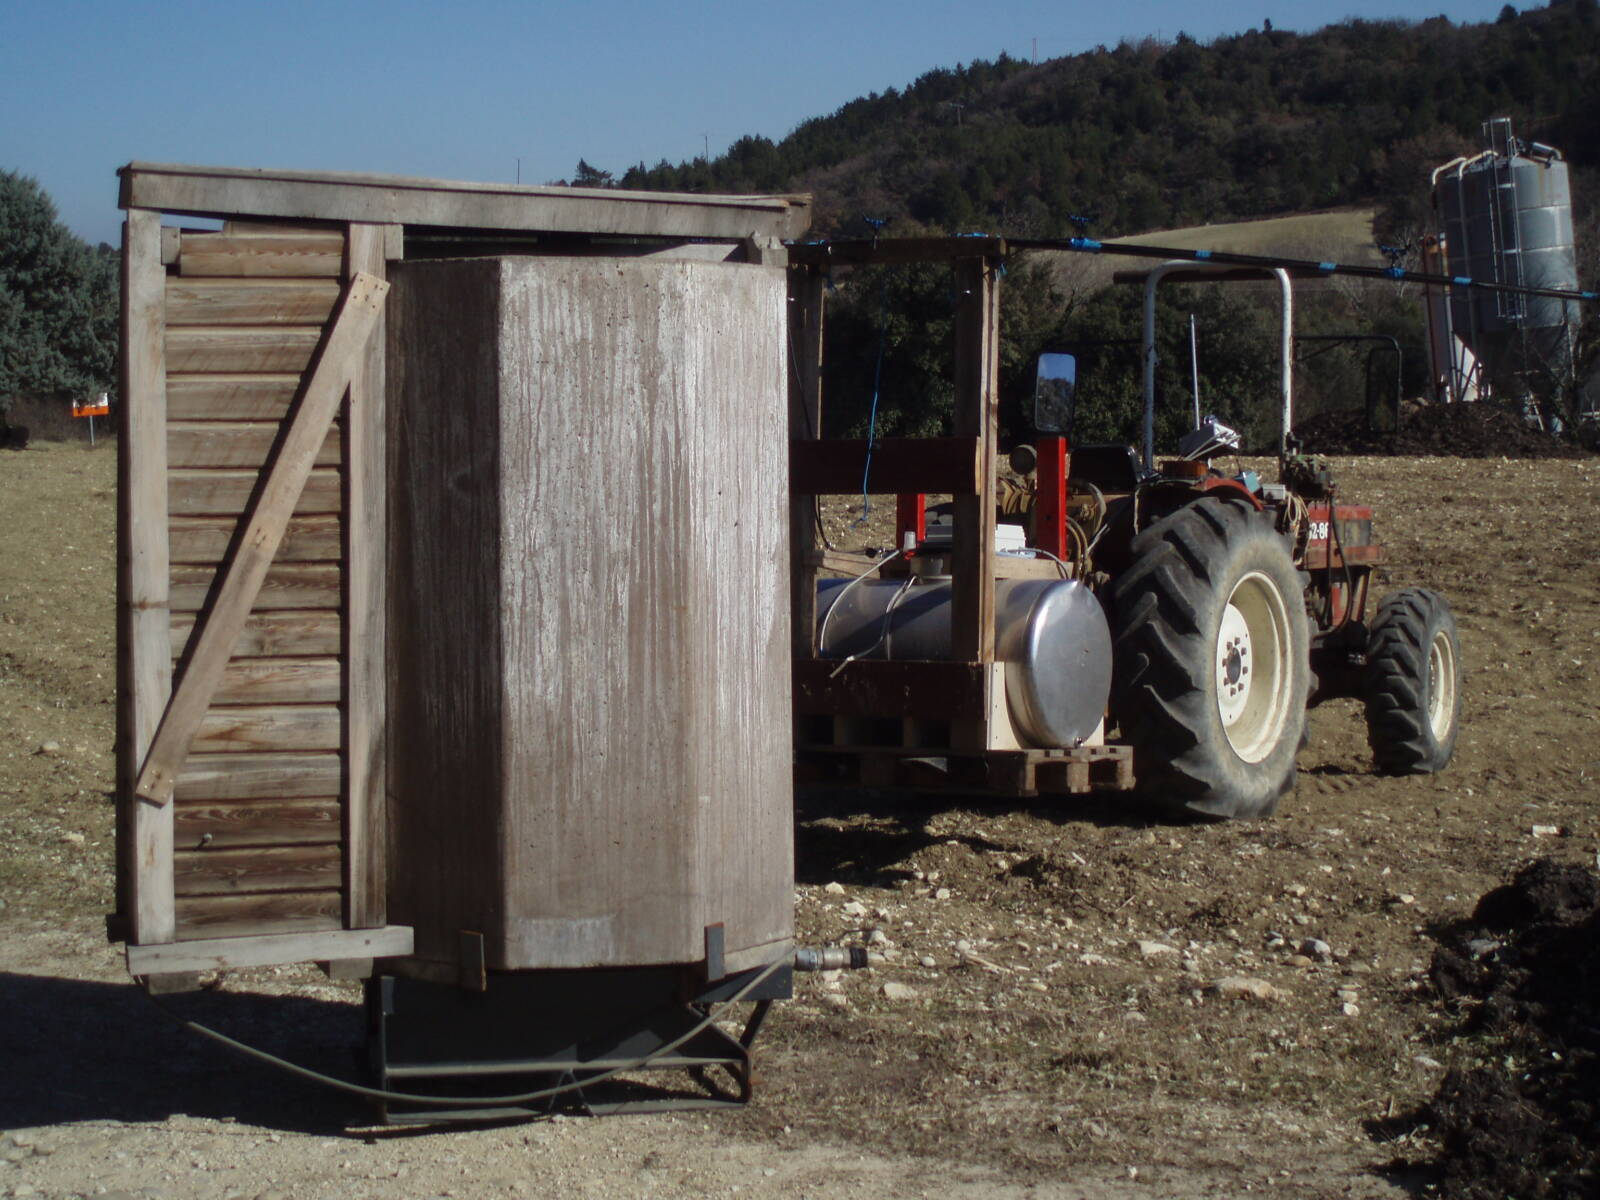 Biodynamic preparations